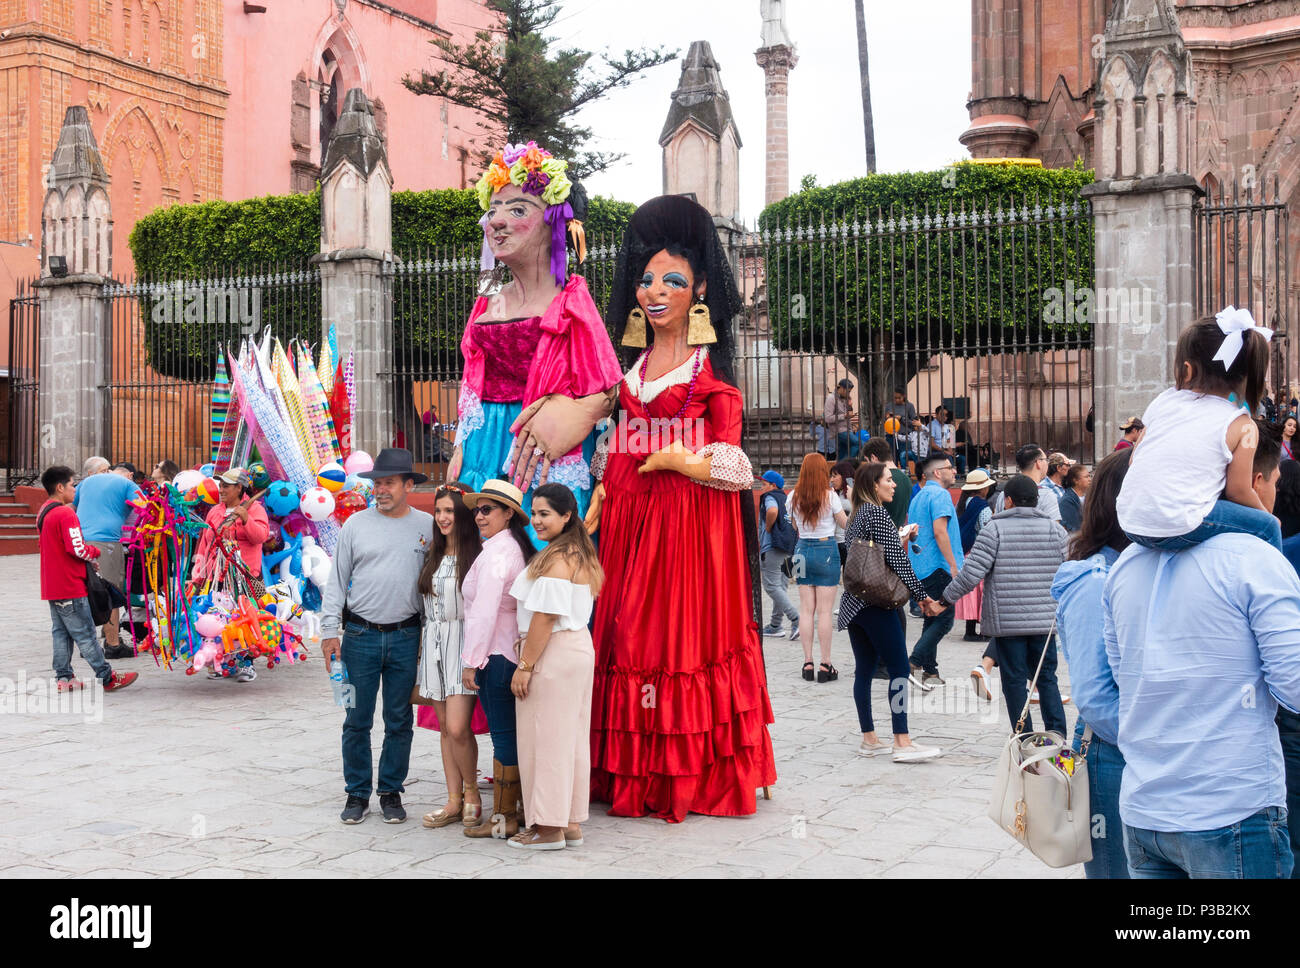 Family of four having their picture taken with two mojigangas in front of Parroquia de San Miguel Arcangel Catholic Church - Stock Image